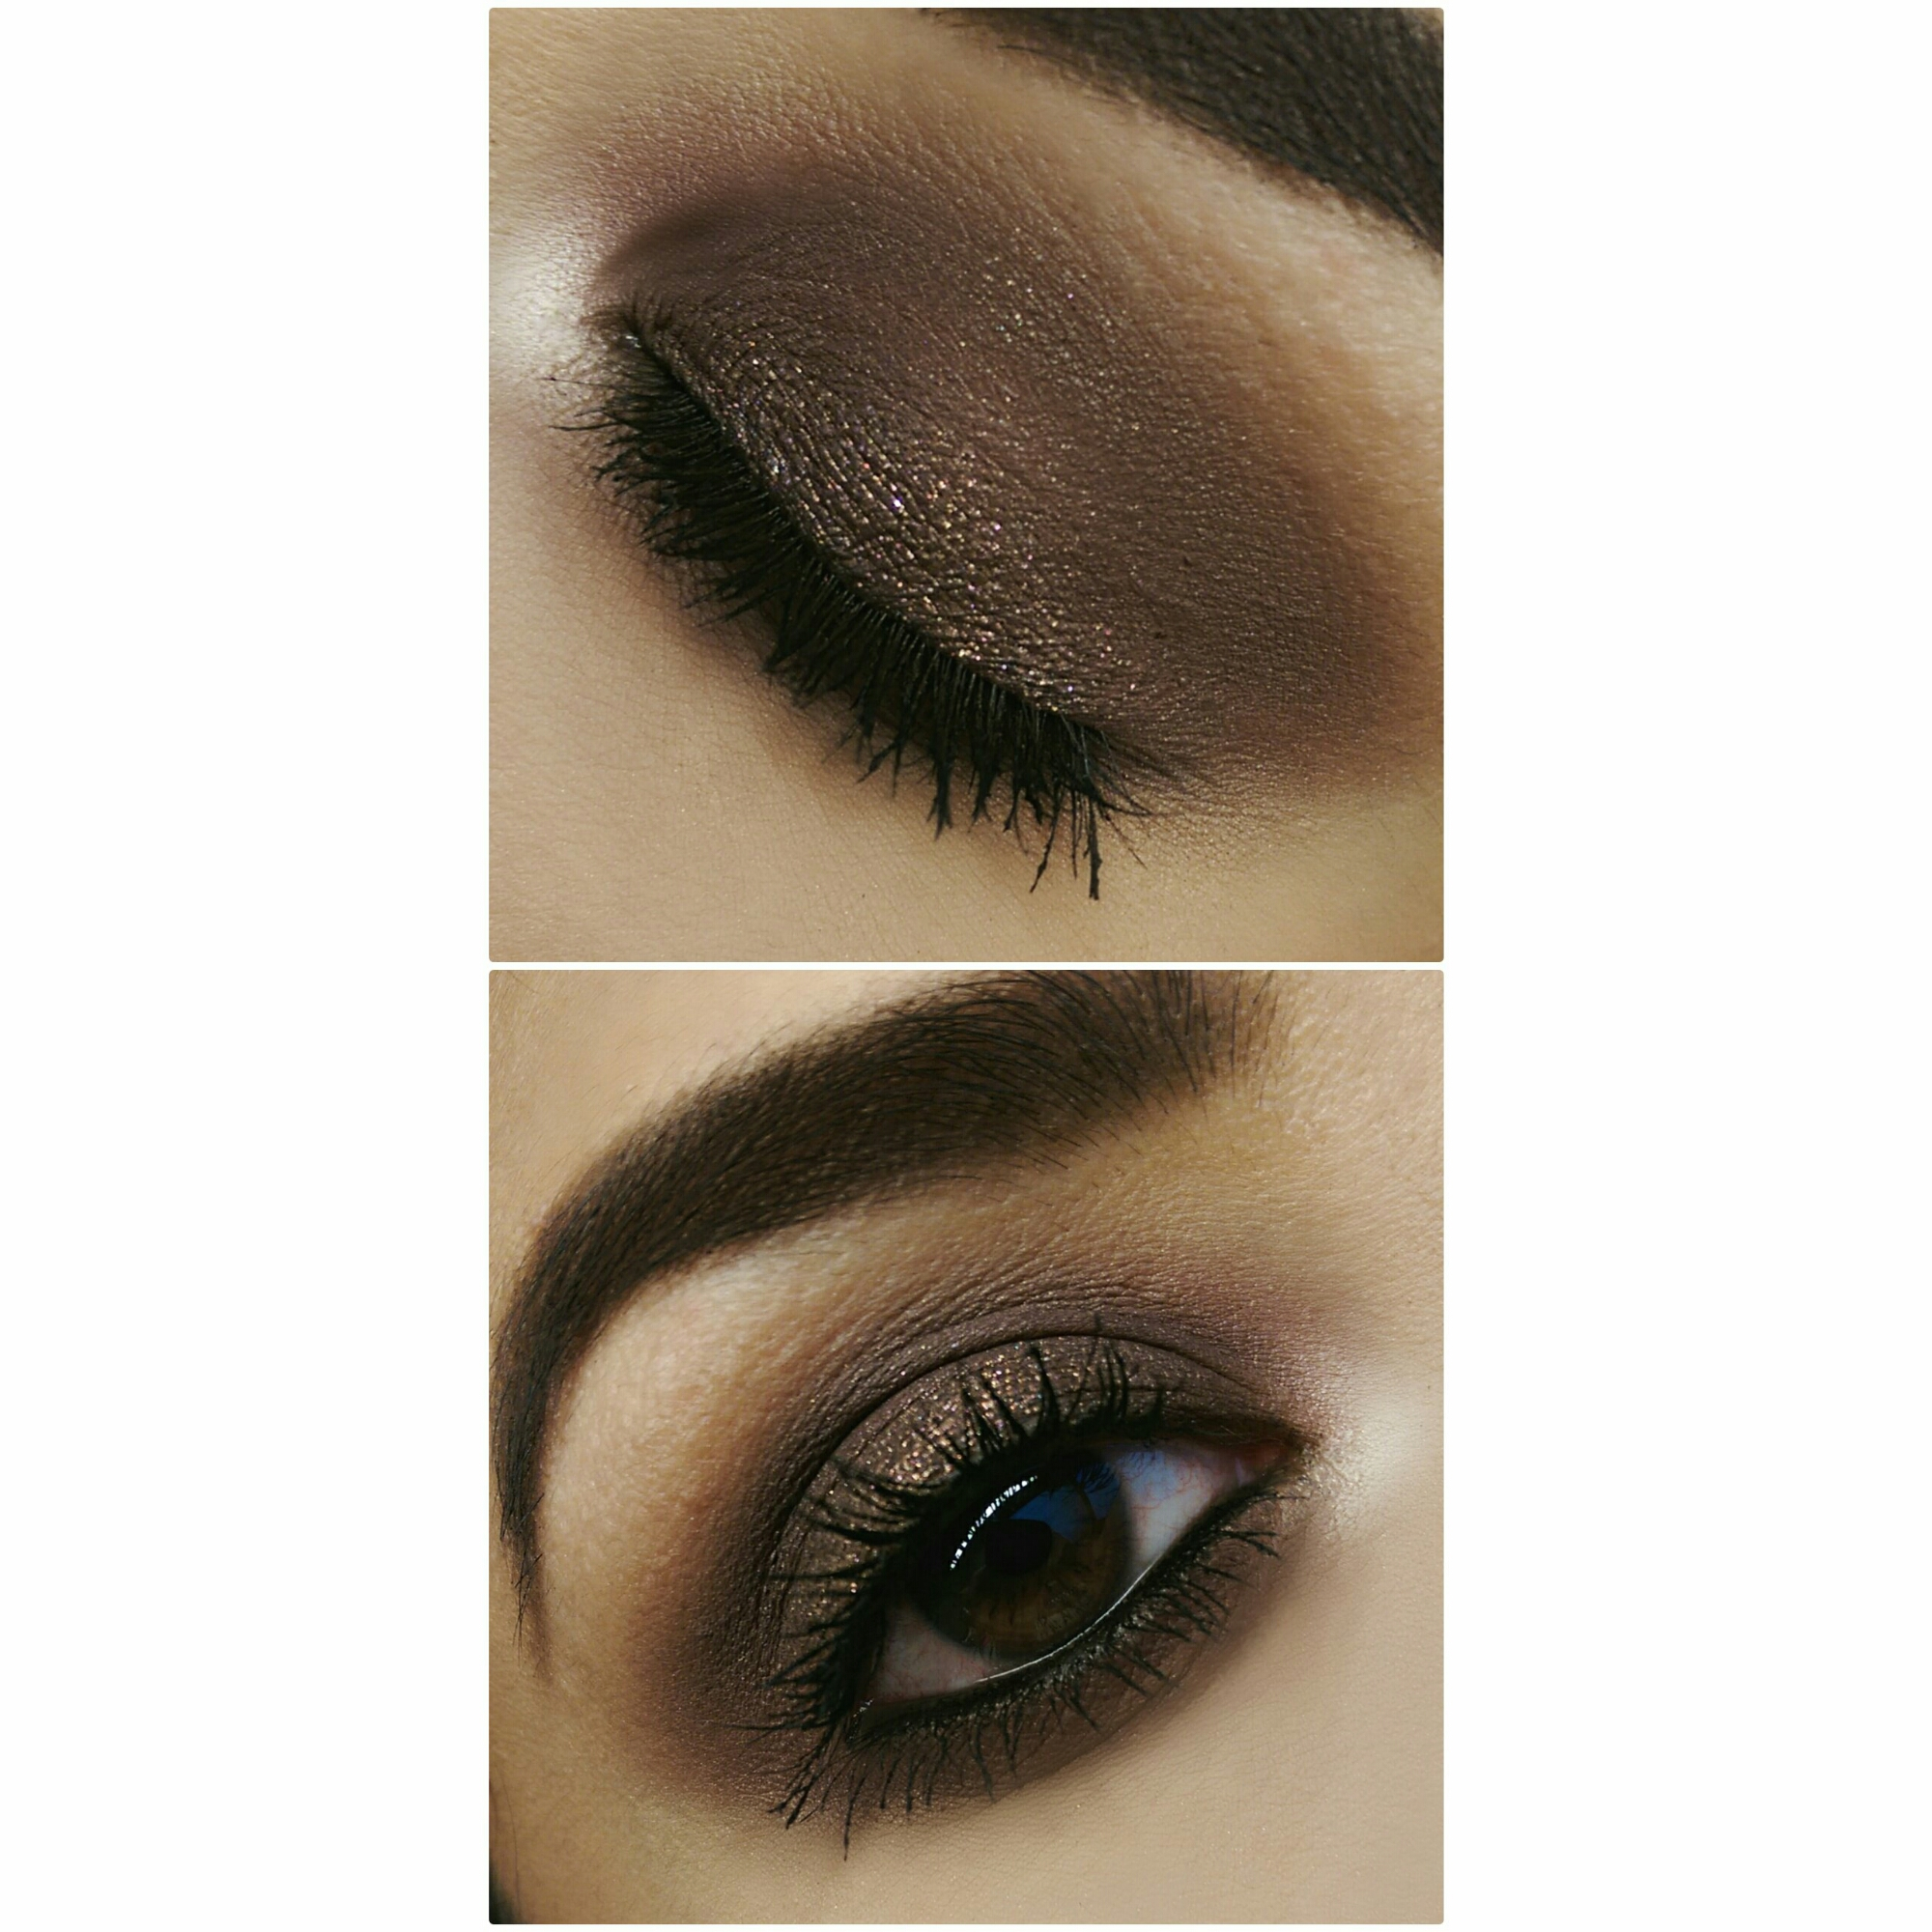 MOTD MakeupGeek Cosmetics Mac Cosmetics ColourPop Cosmetics Brown Smokey Eye Anastasia Brows